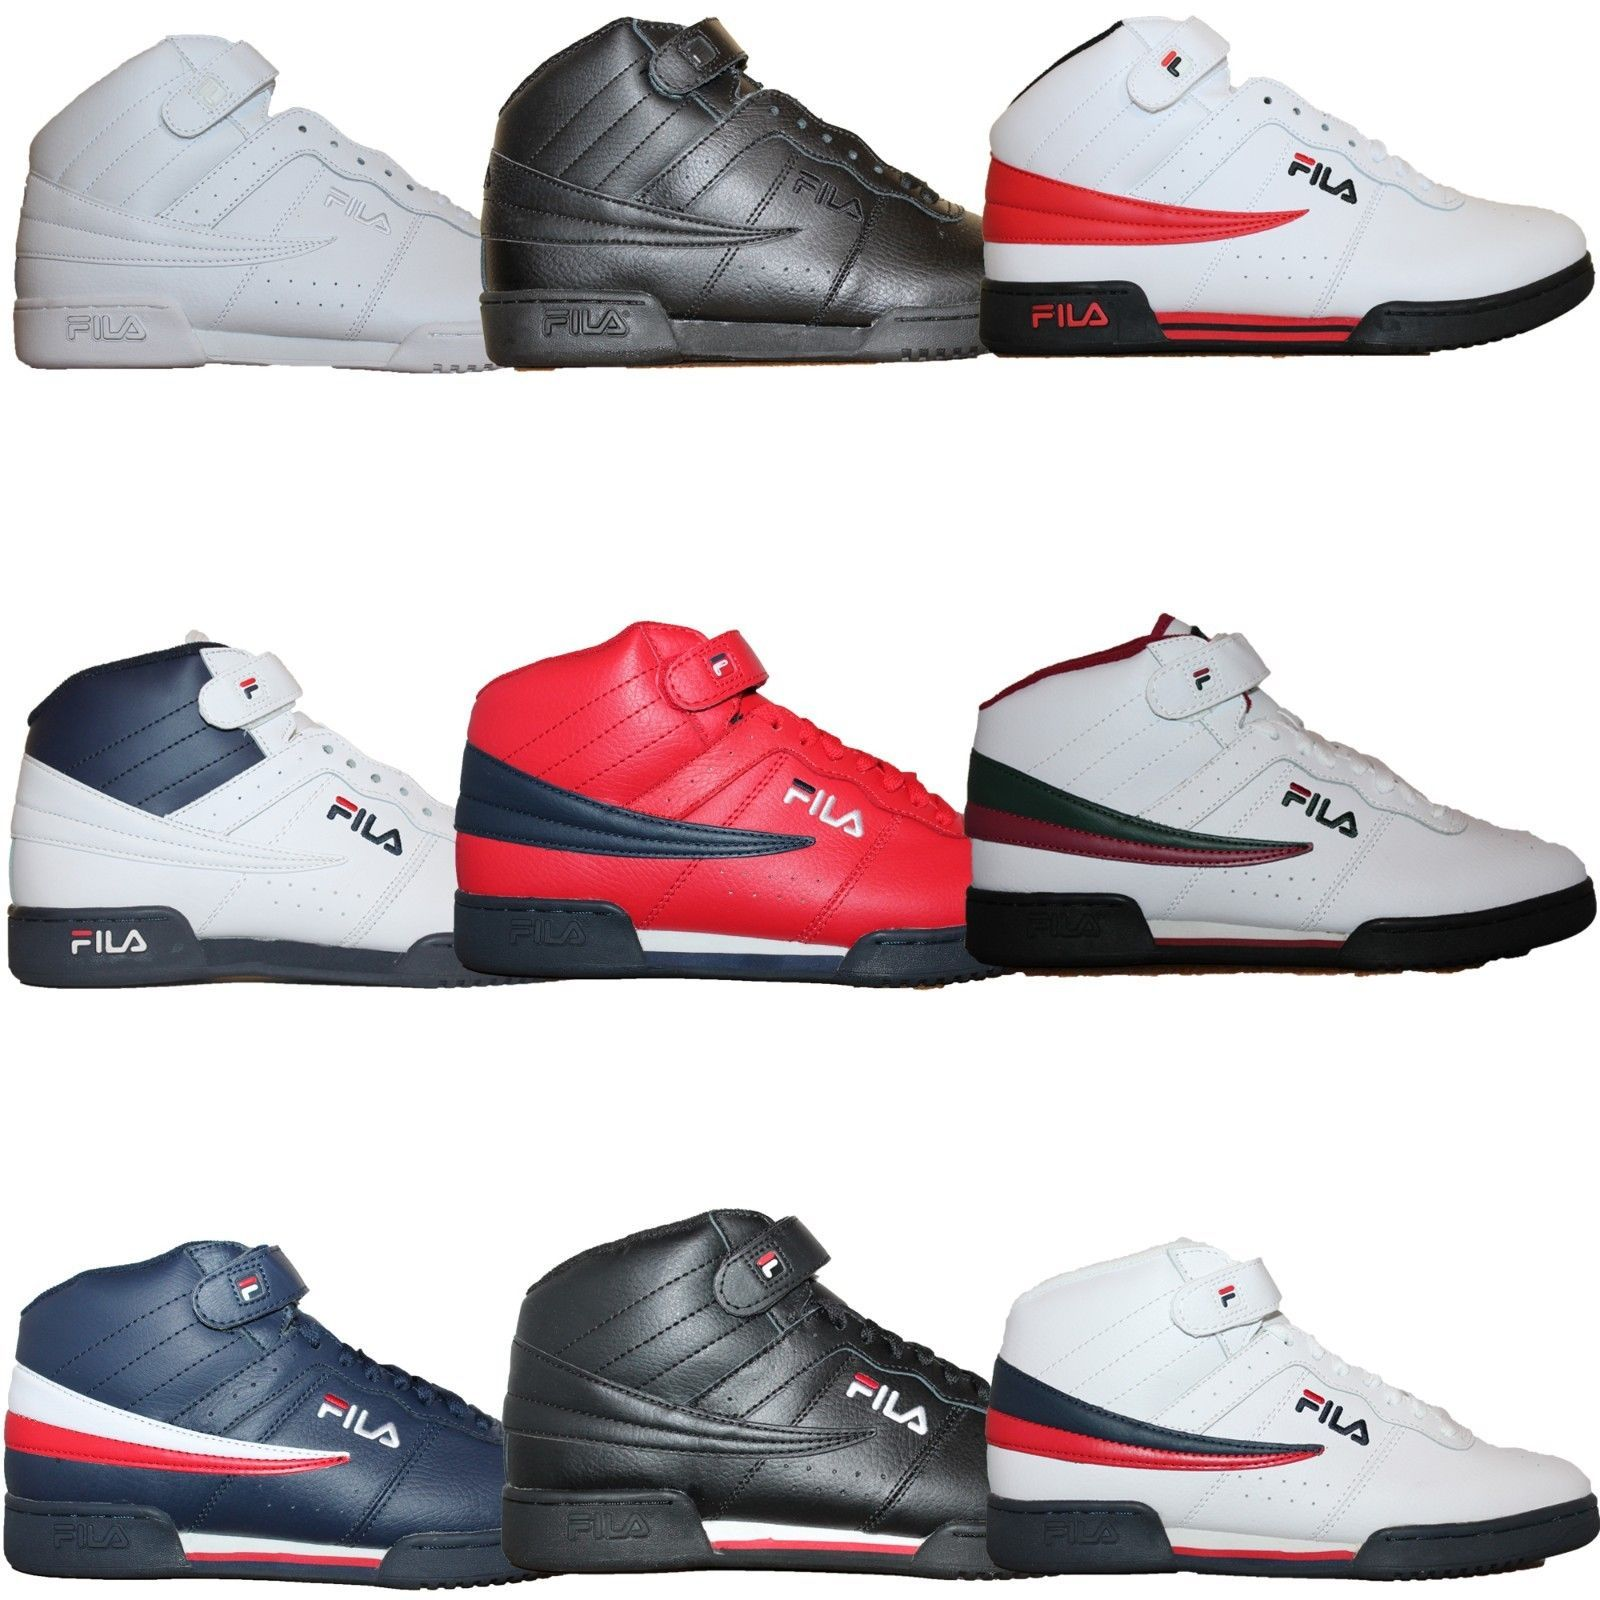 Mens Fila F13 F 13 Classic Mid High Top Basketball Shoes Sneakers